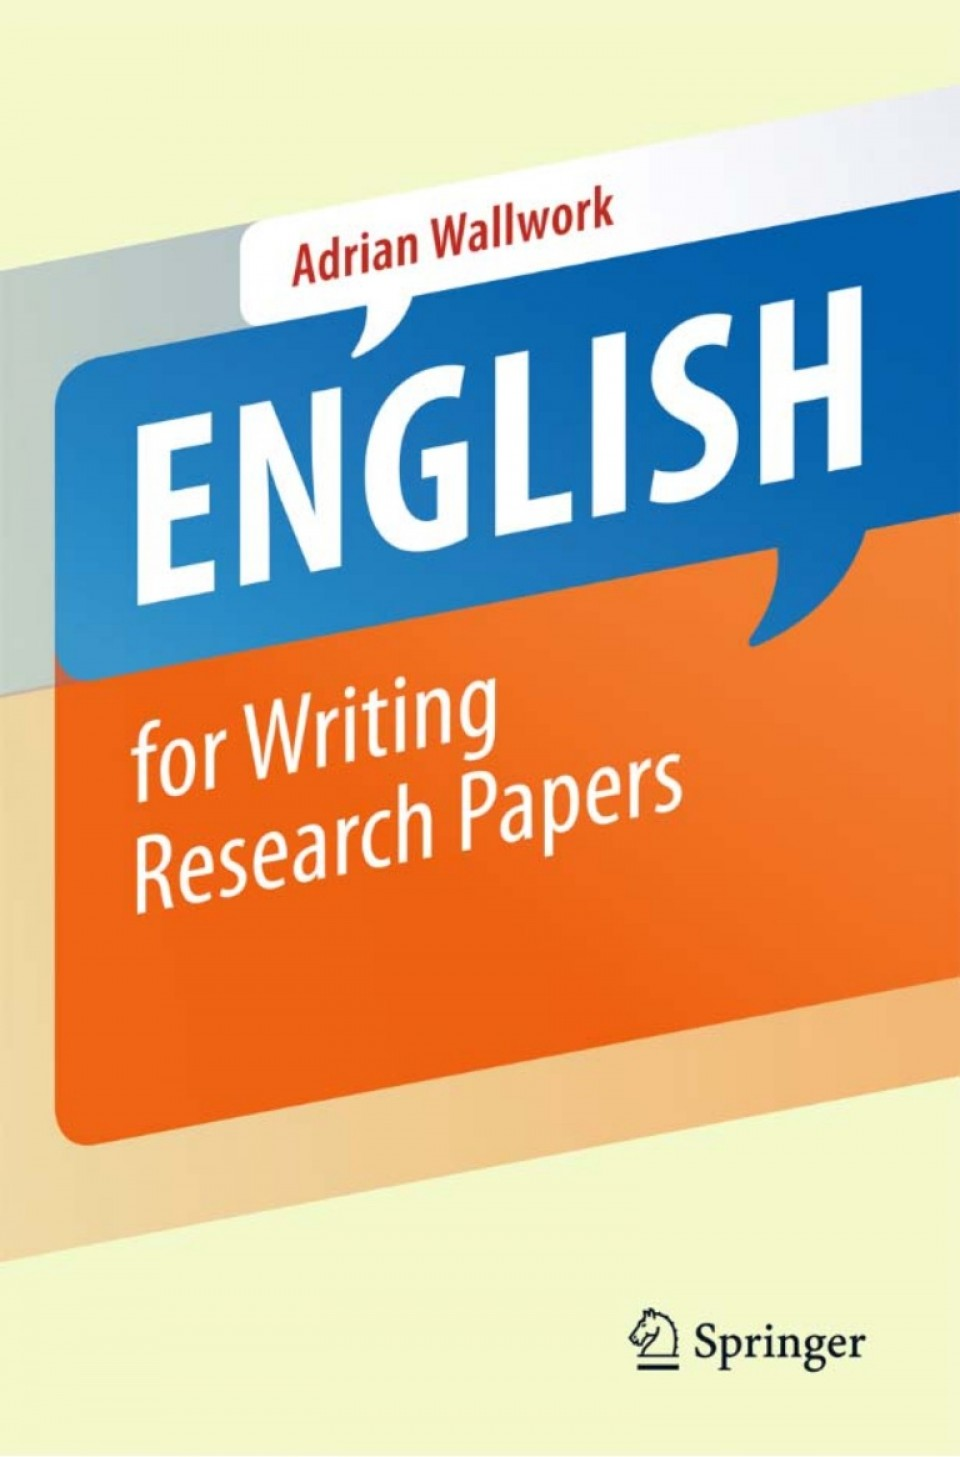 021 Englishforwritingresearchpapers Conversion Gate01 Thumbnail Help With Writing Researchs Fantastic Research Papers Assistance A Paper 960